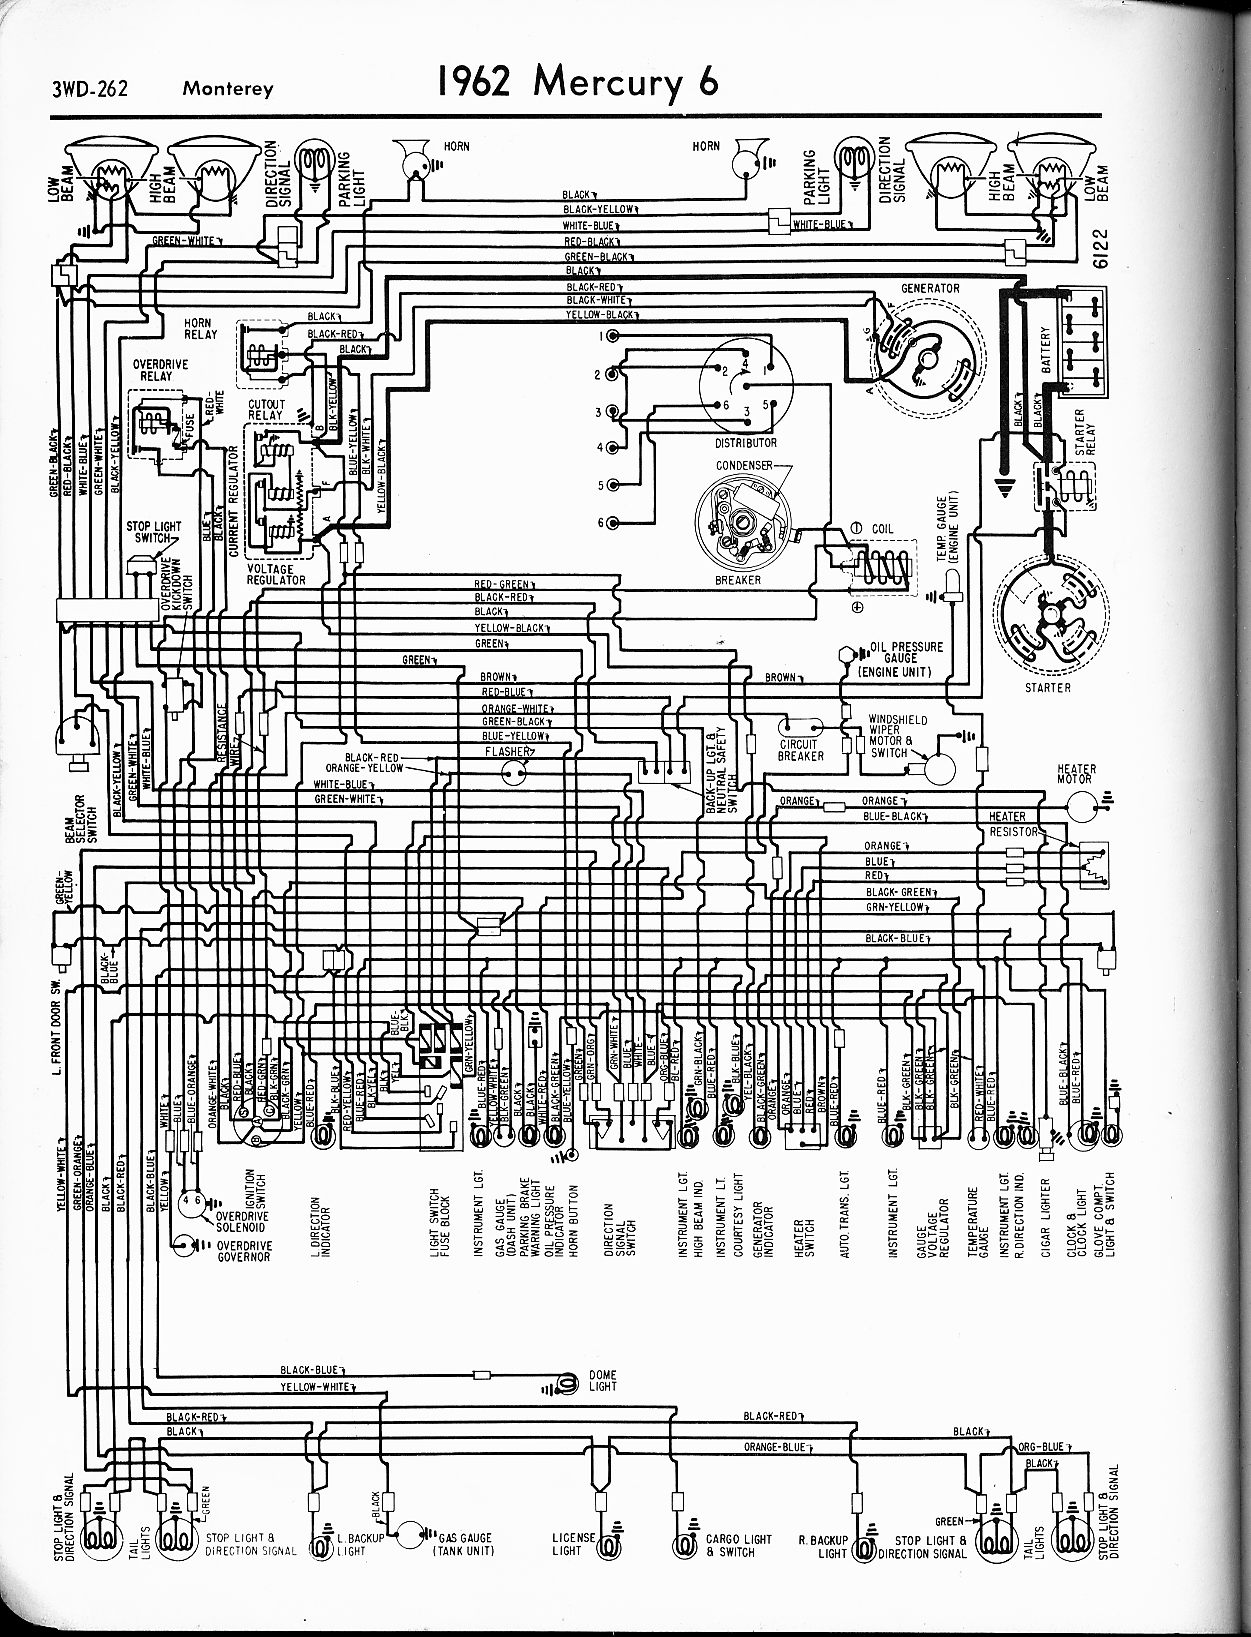 1967 Mustang Fuse Box Diagram As Well 1965 Plymouth Wiring Switch Furthermore Audi Concert Also Mercury Diagrams The Old Car Manual Project Rh Oldcarmanualproject Com